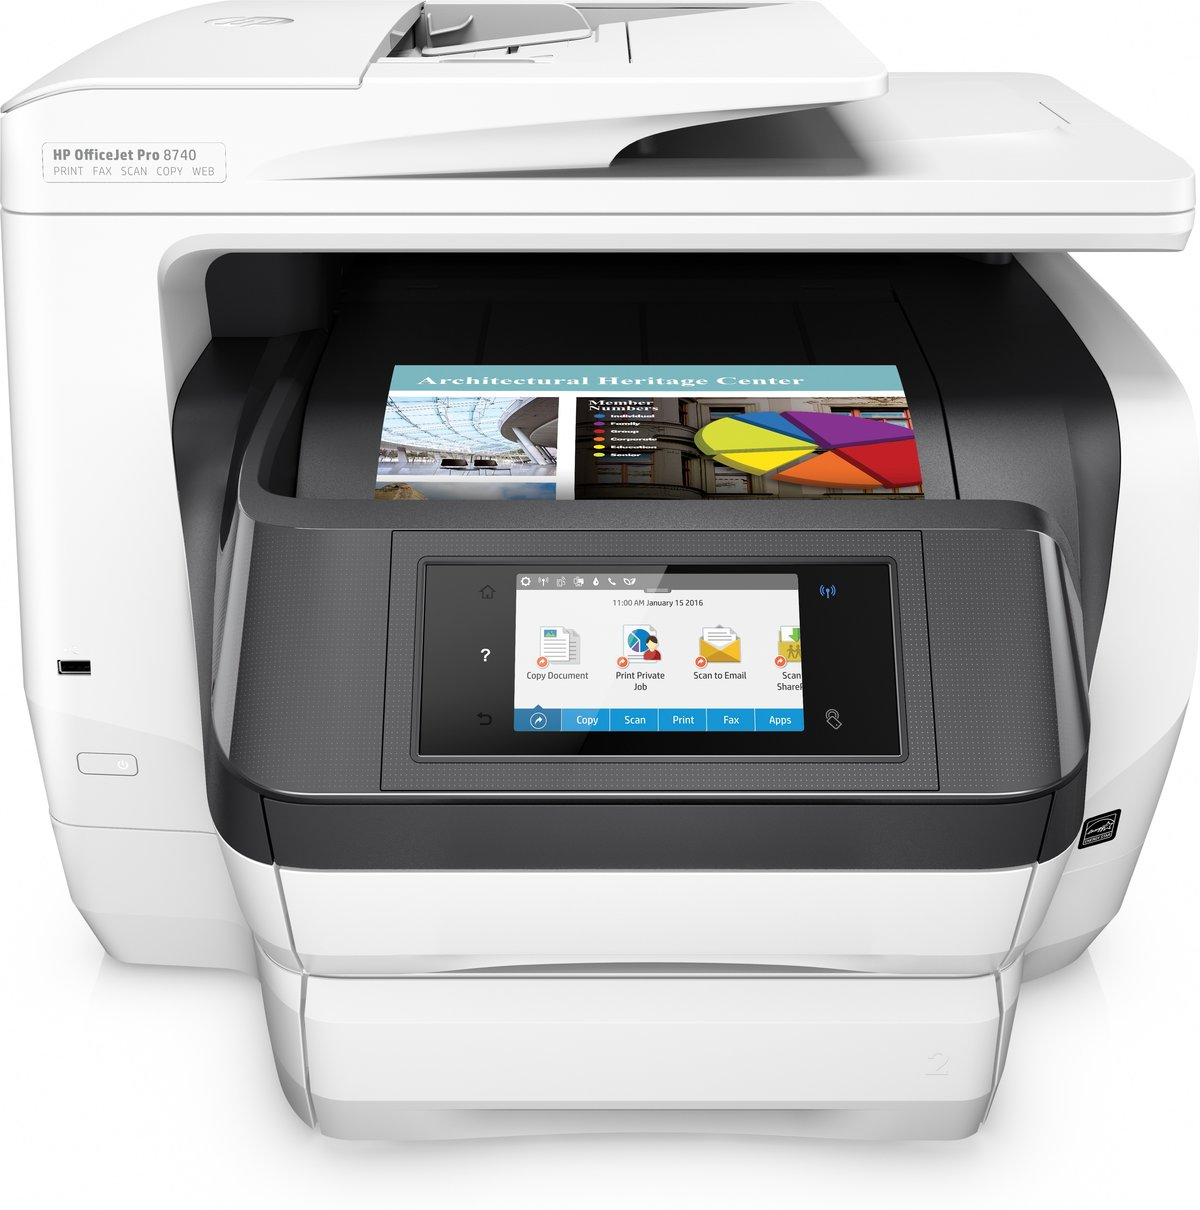 HP OfficeJet Pro 8740 All in One Wireless Printer with Mobile Printing  K7S42A by Office Depot & OfficeMax